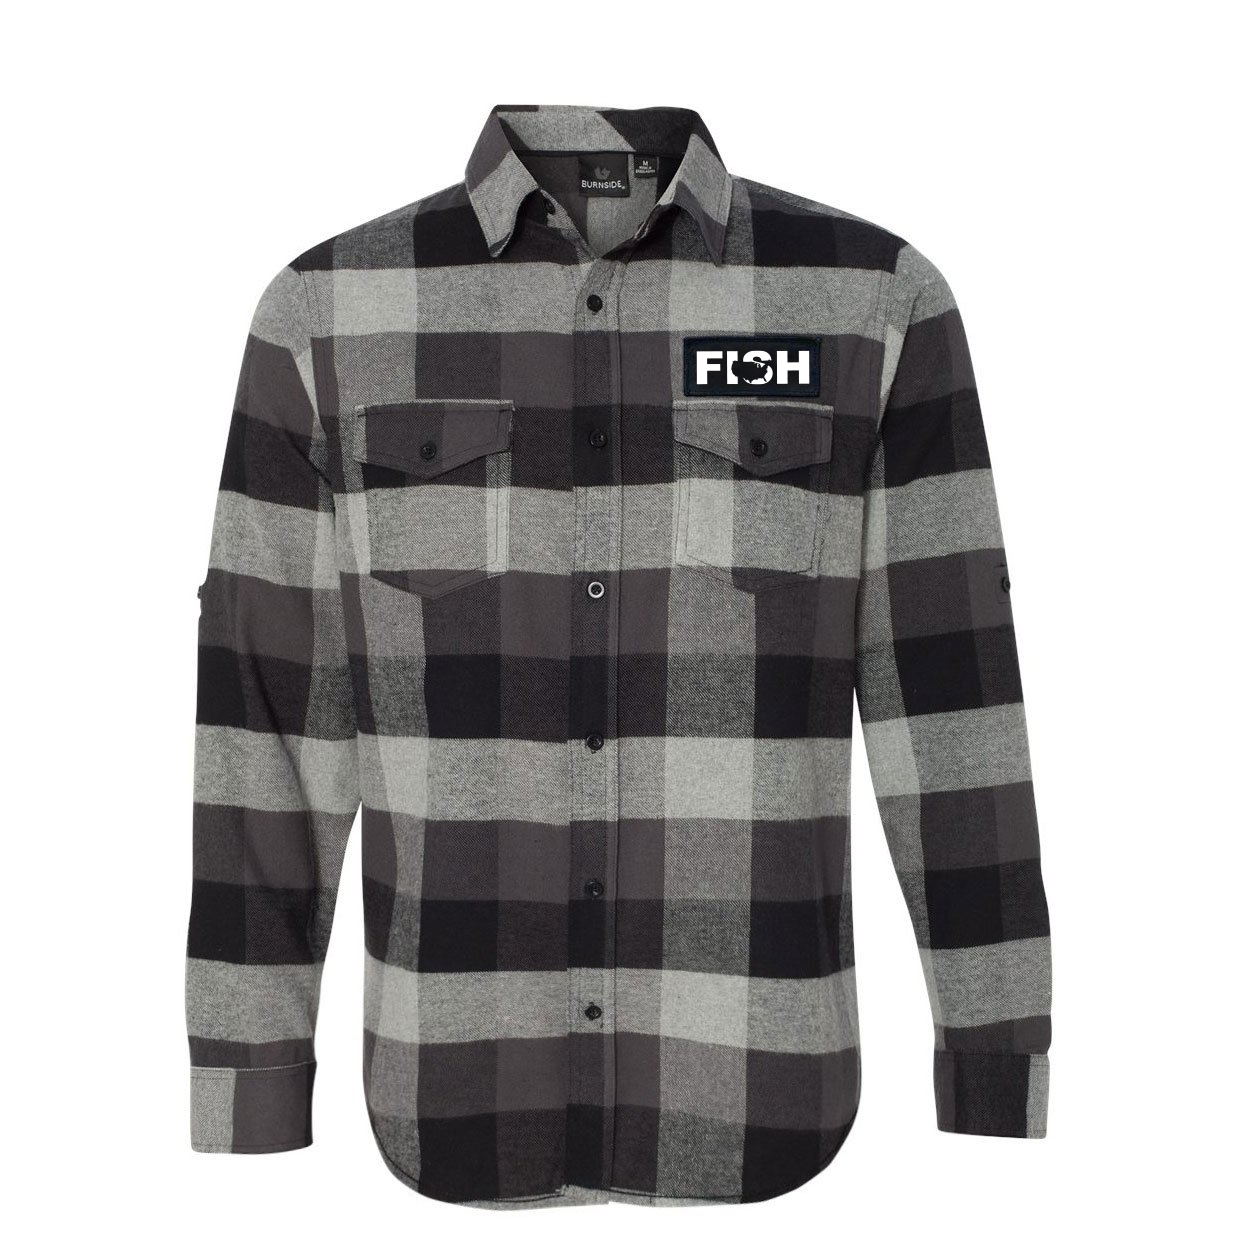 Fish United States Classic Unisex Long Sleeve Woven Patch Flannel Shirt Black/Gray (White Logo)